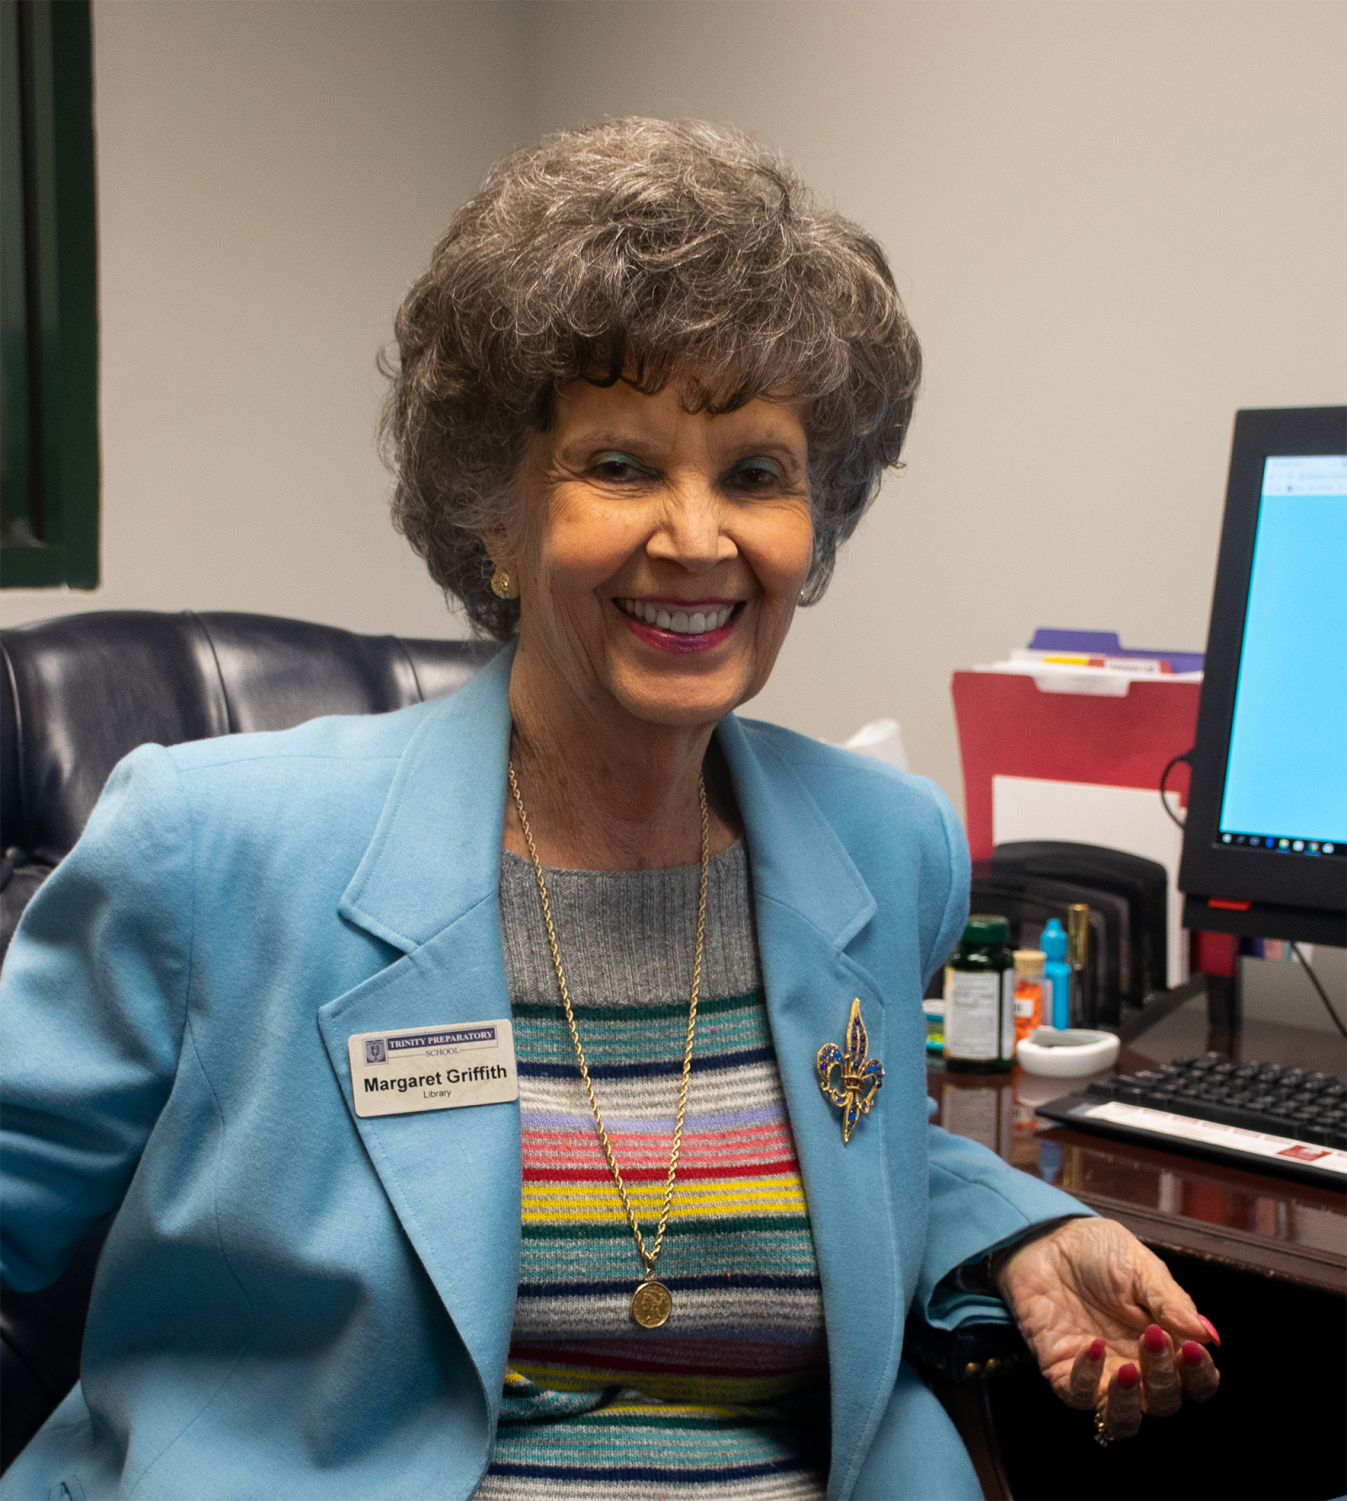 Margaret Griffith retires on Friday March 29th